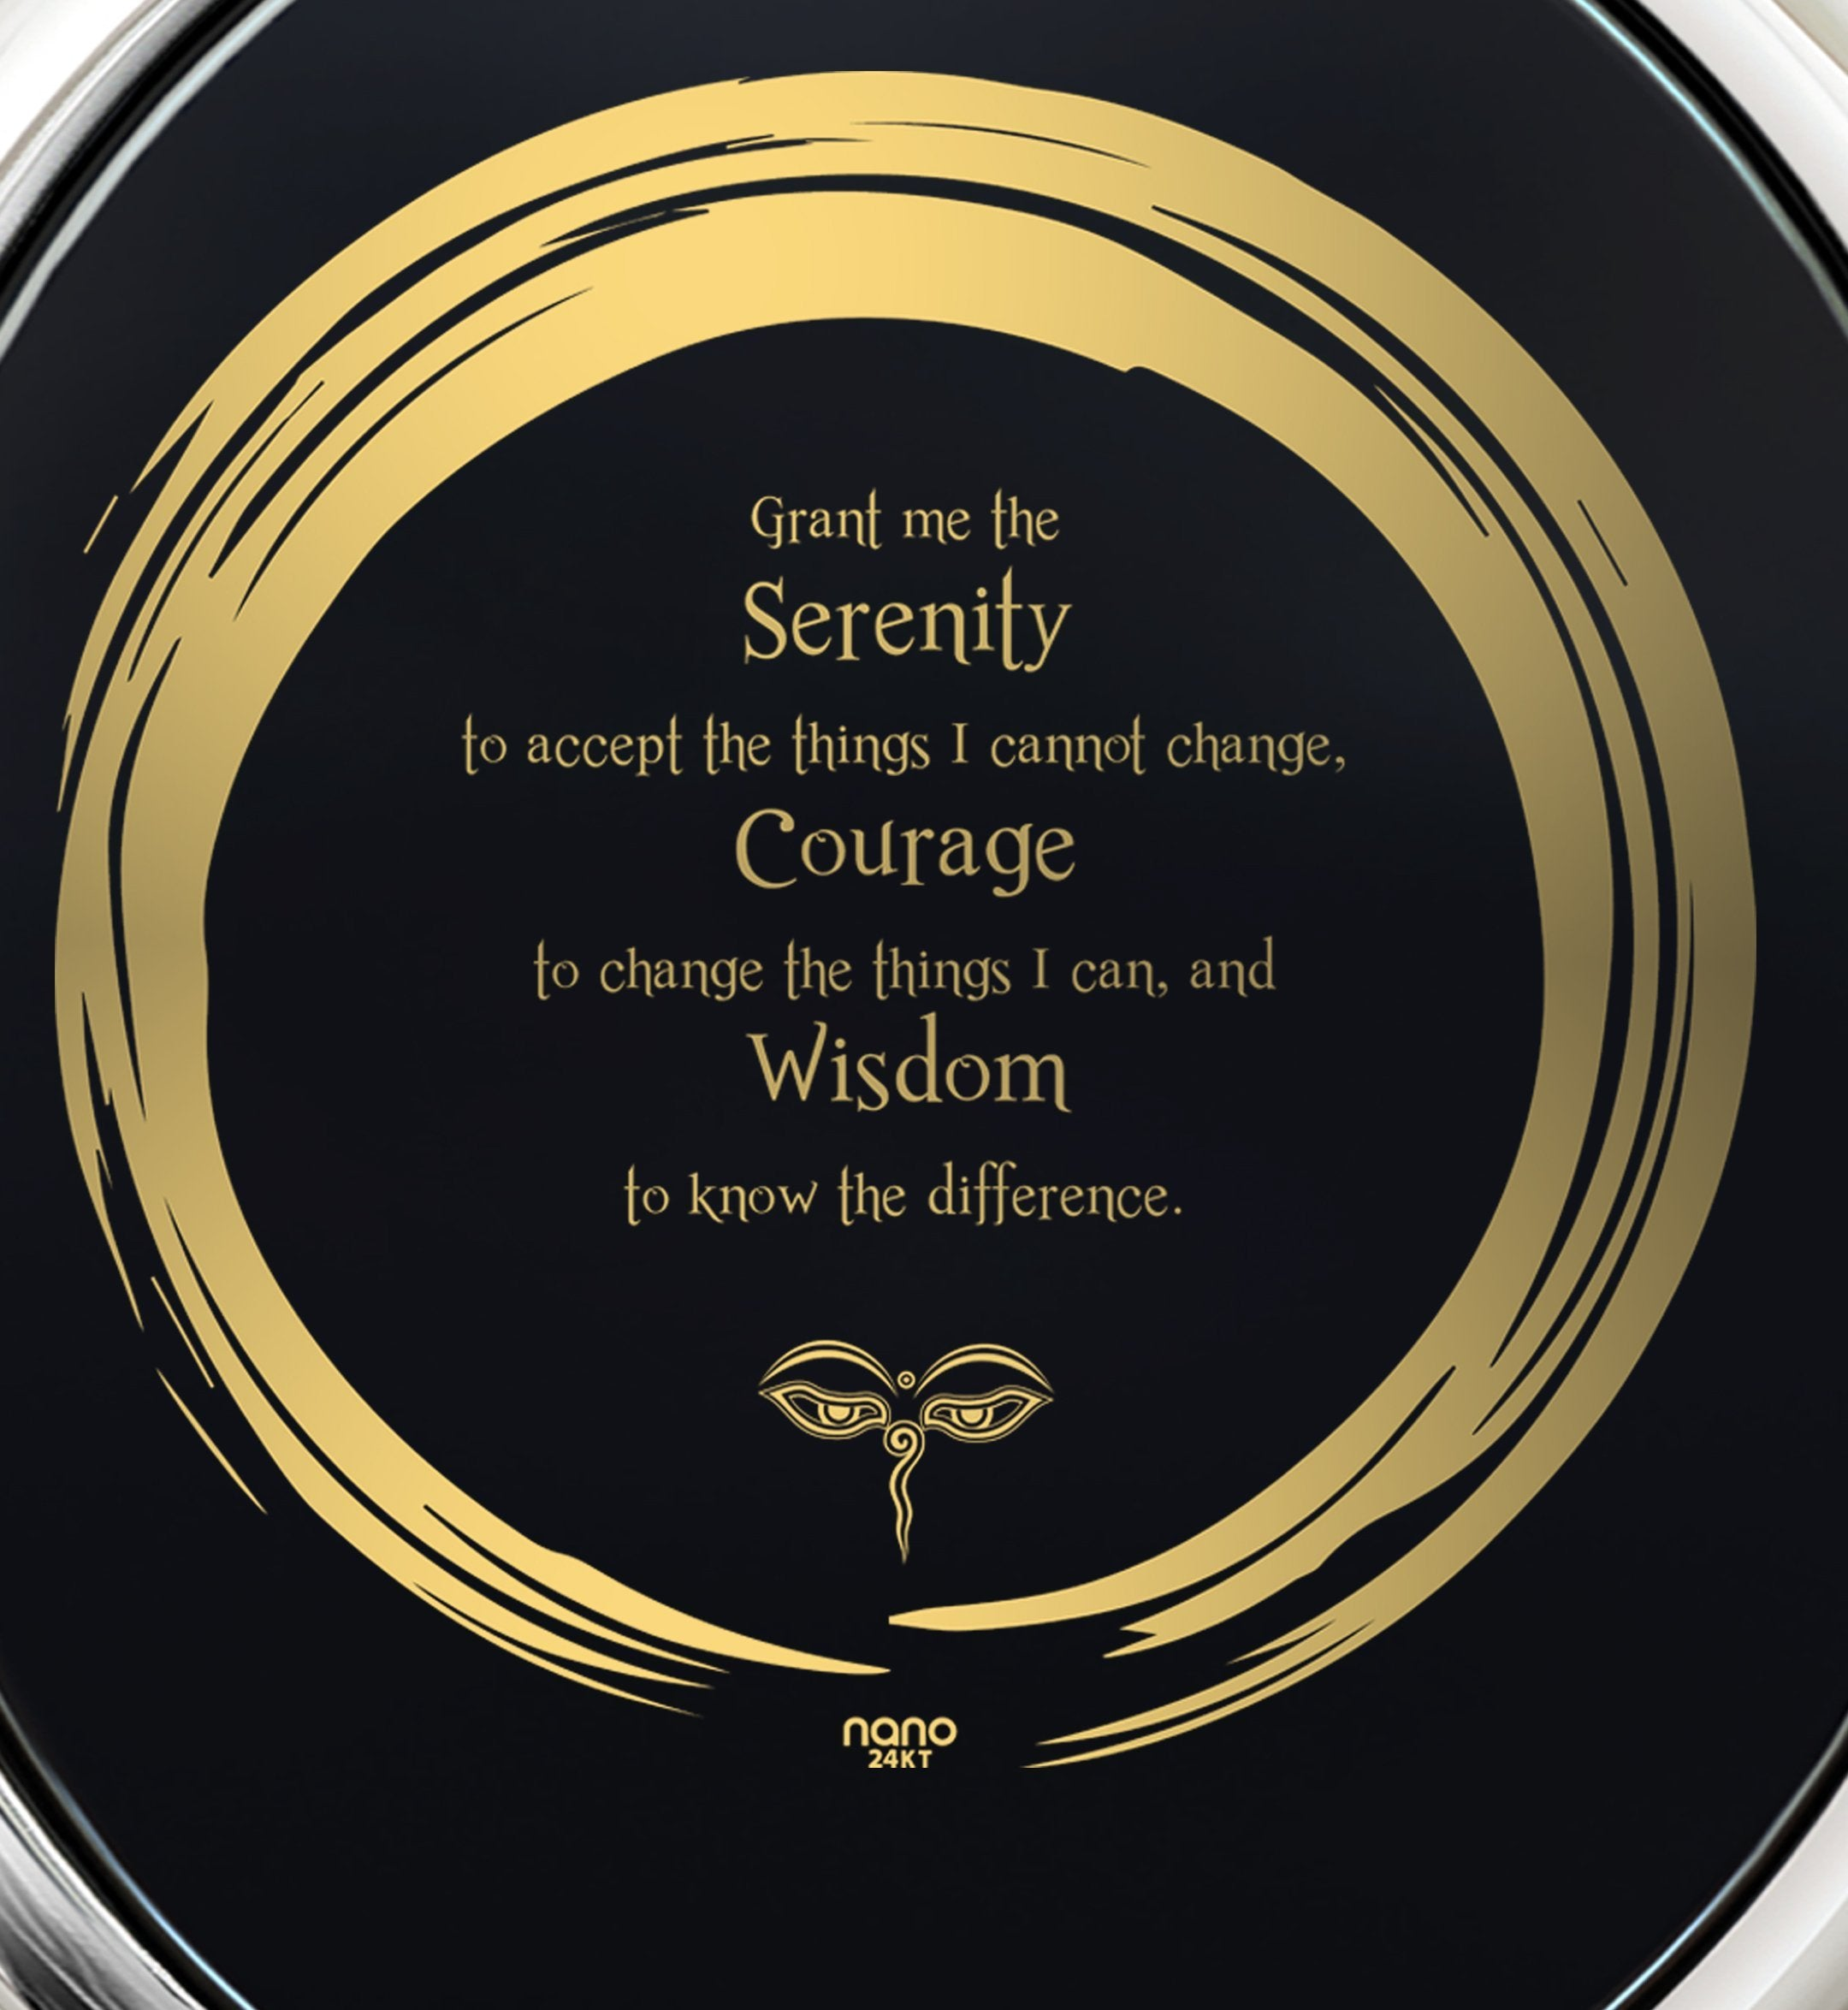 Serenity Prayer Jewelry: Great Gifts for Her, Womens Birthday Presents, Real Sterling Silver Necklace, Nano Jewelry